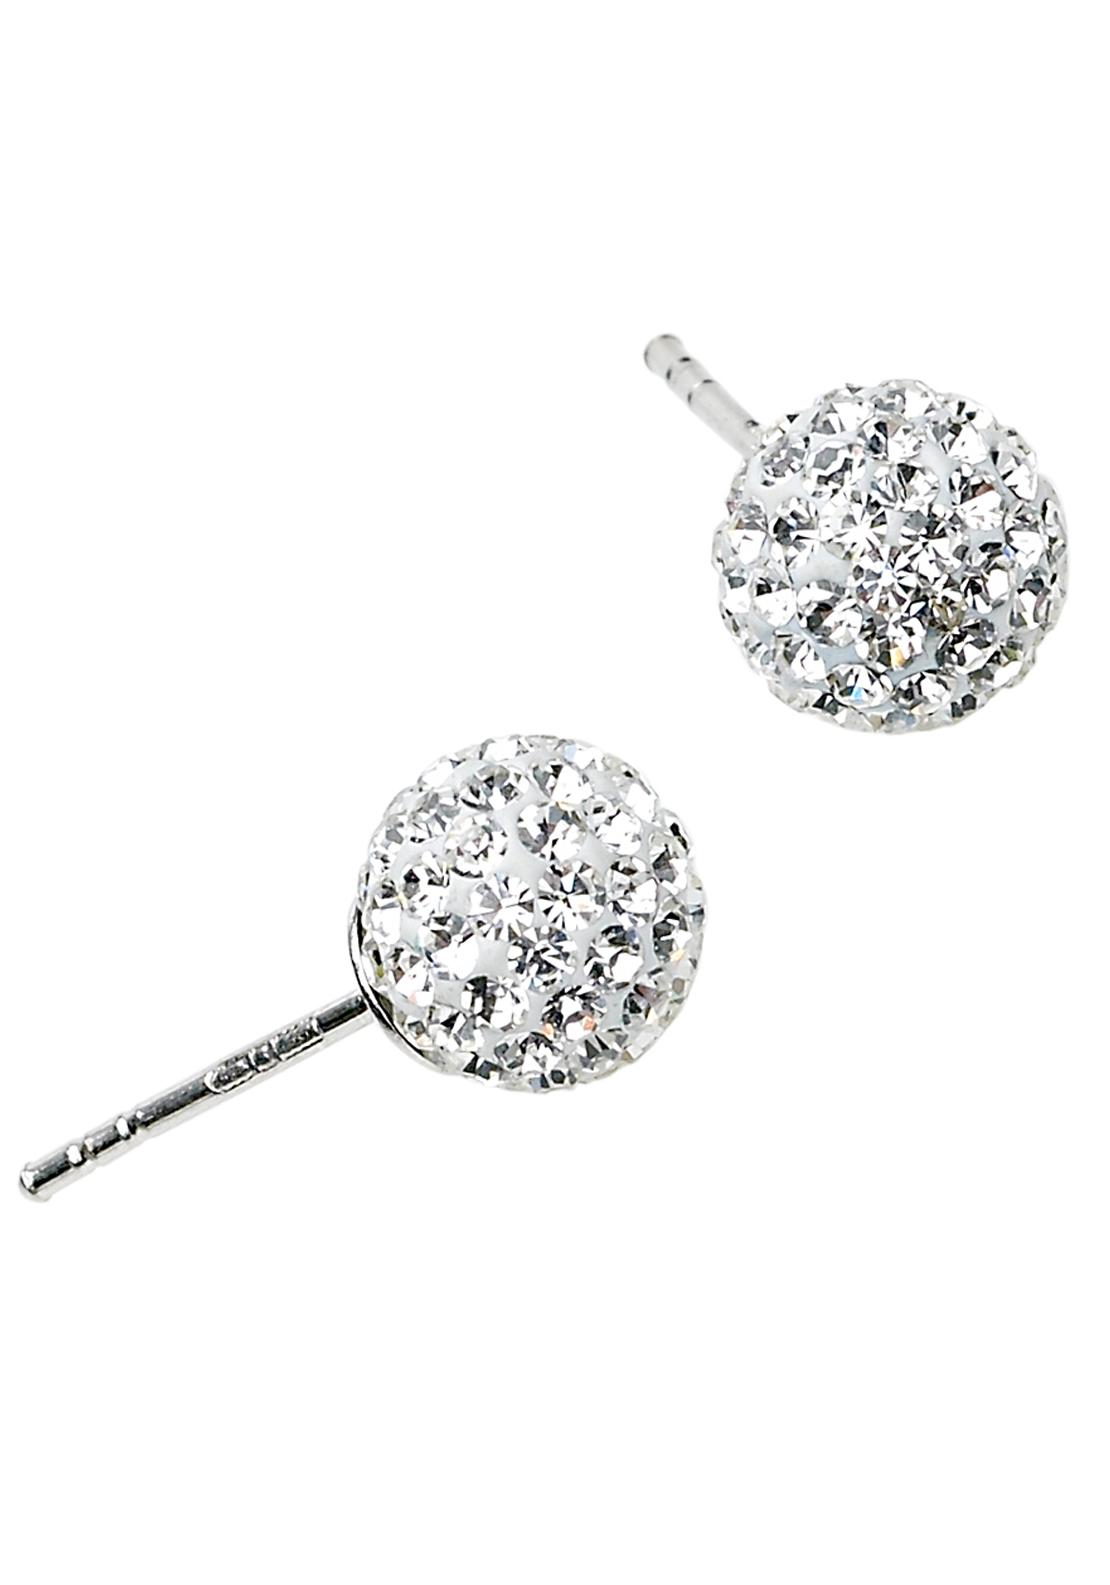 Killarney Crystal Venus Earrings